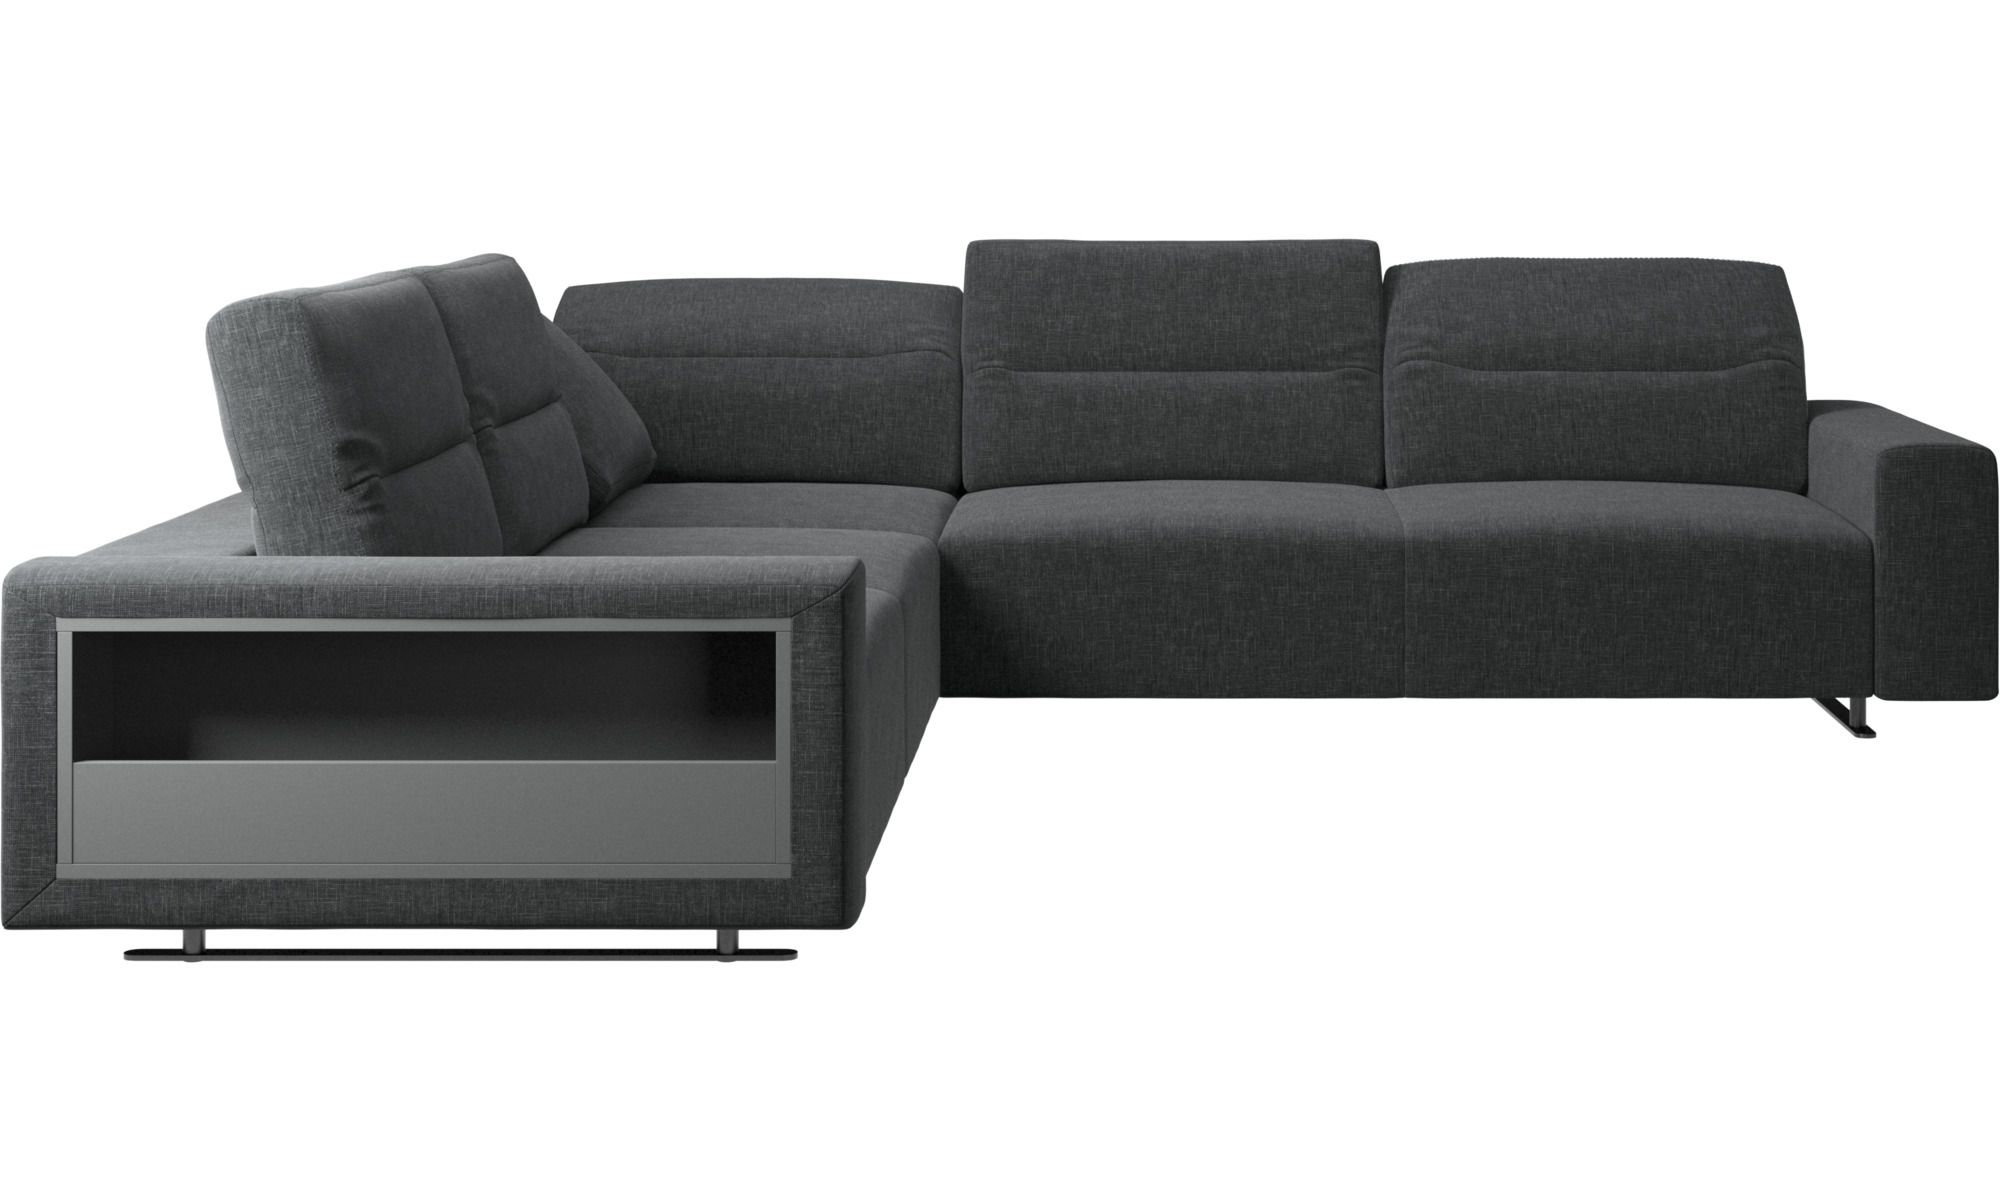 102 Reference Of Couch Corner Side In 2020 Corner Sofa Sofa Bed With Storage Corner Sofa Bed